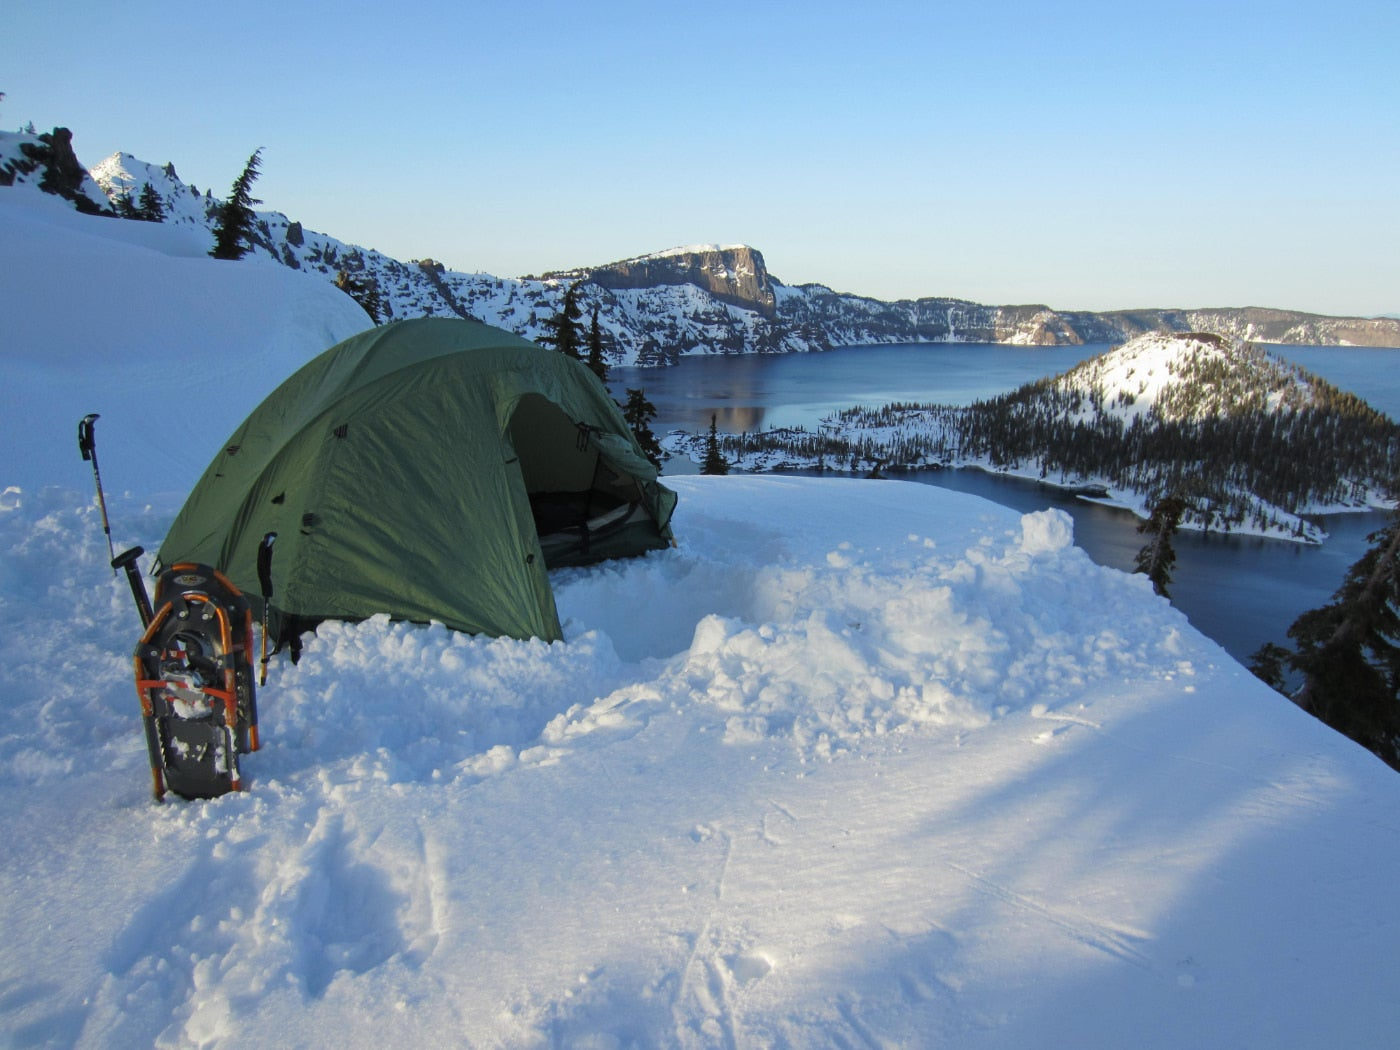 Orange snowshoes and a green tent sit in the deep snow beside crater lake in winter.